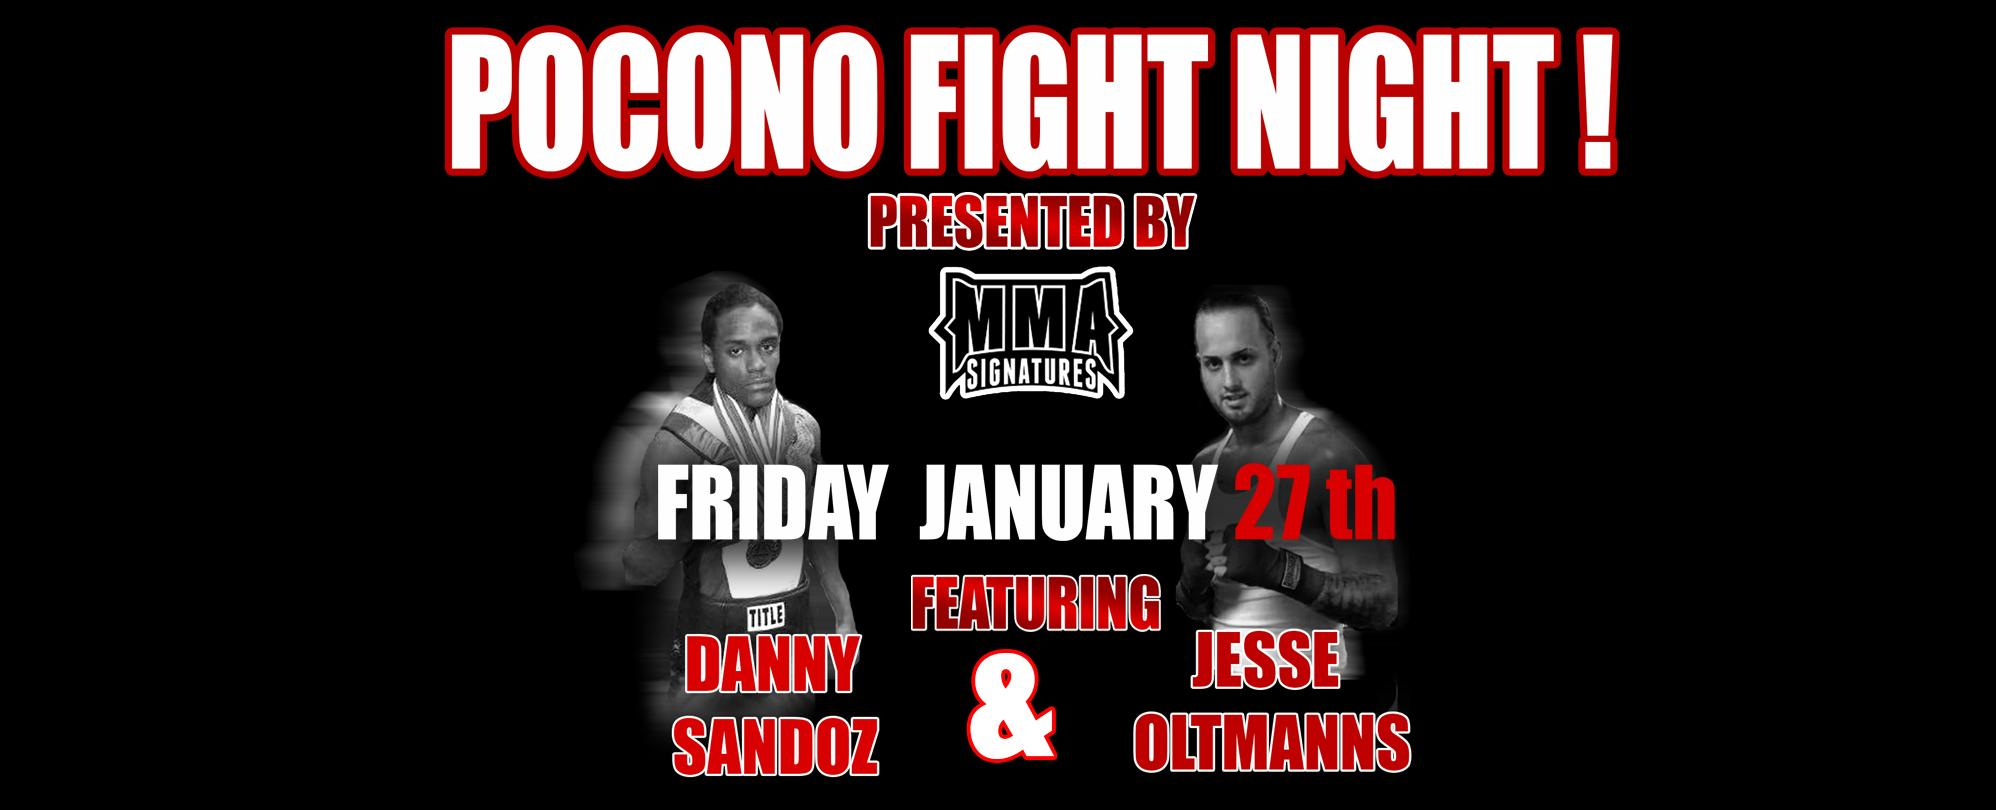 Pocono Fight Night - presented by MMA Signatures